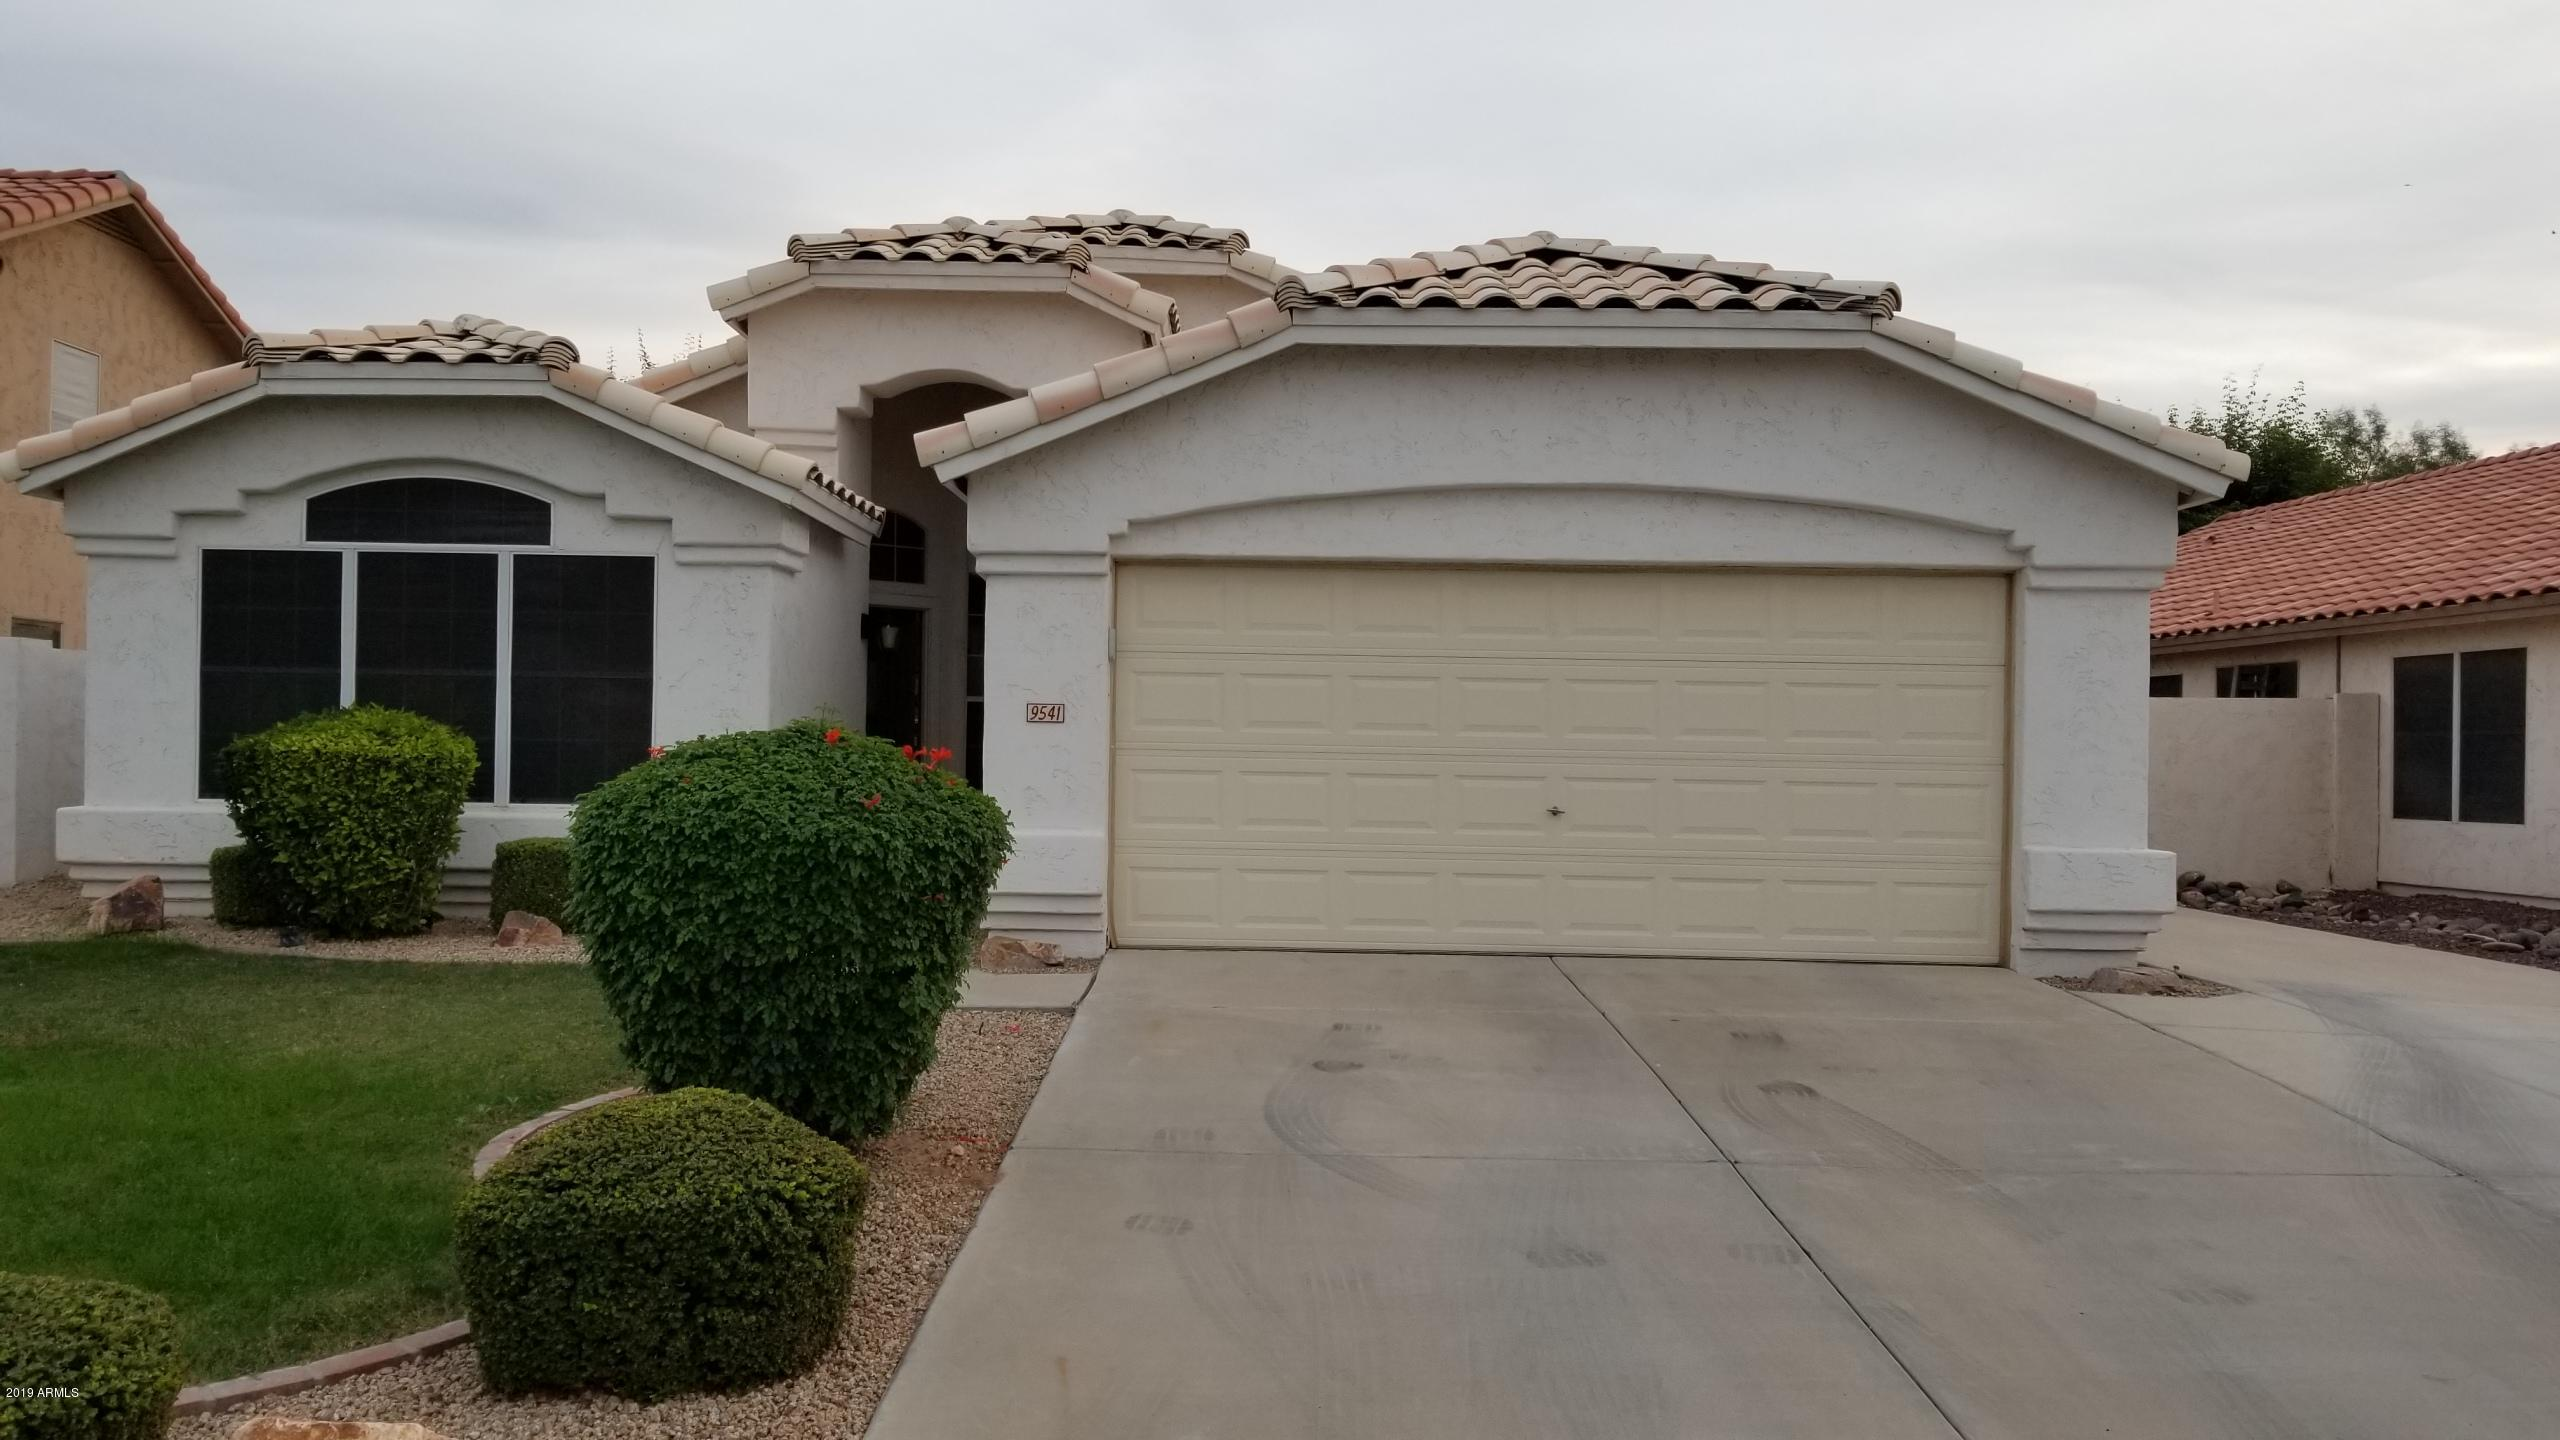 9541 W MARY ANN Drive, Peoria in Maricopa County, AZ 85382 Home for Sale